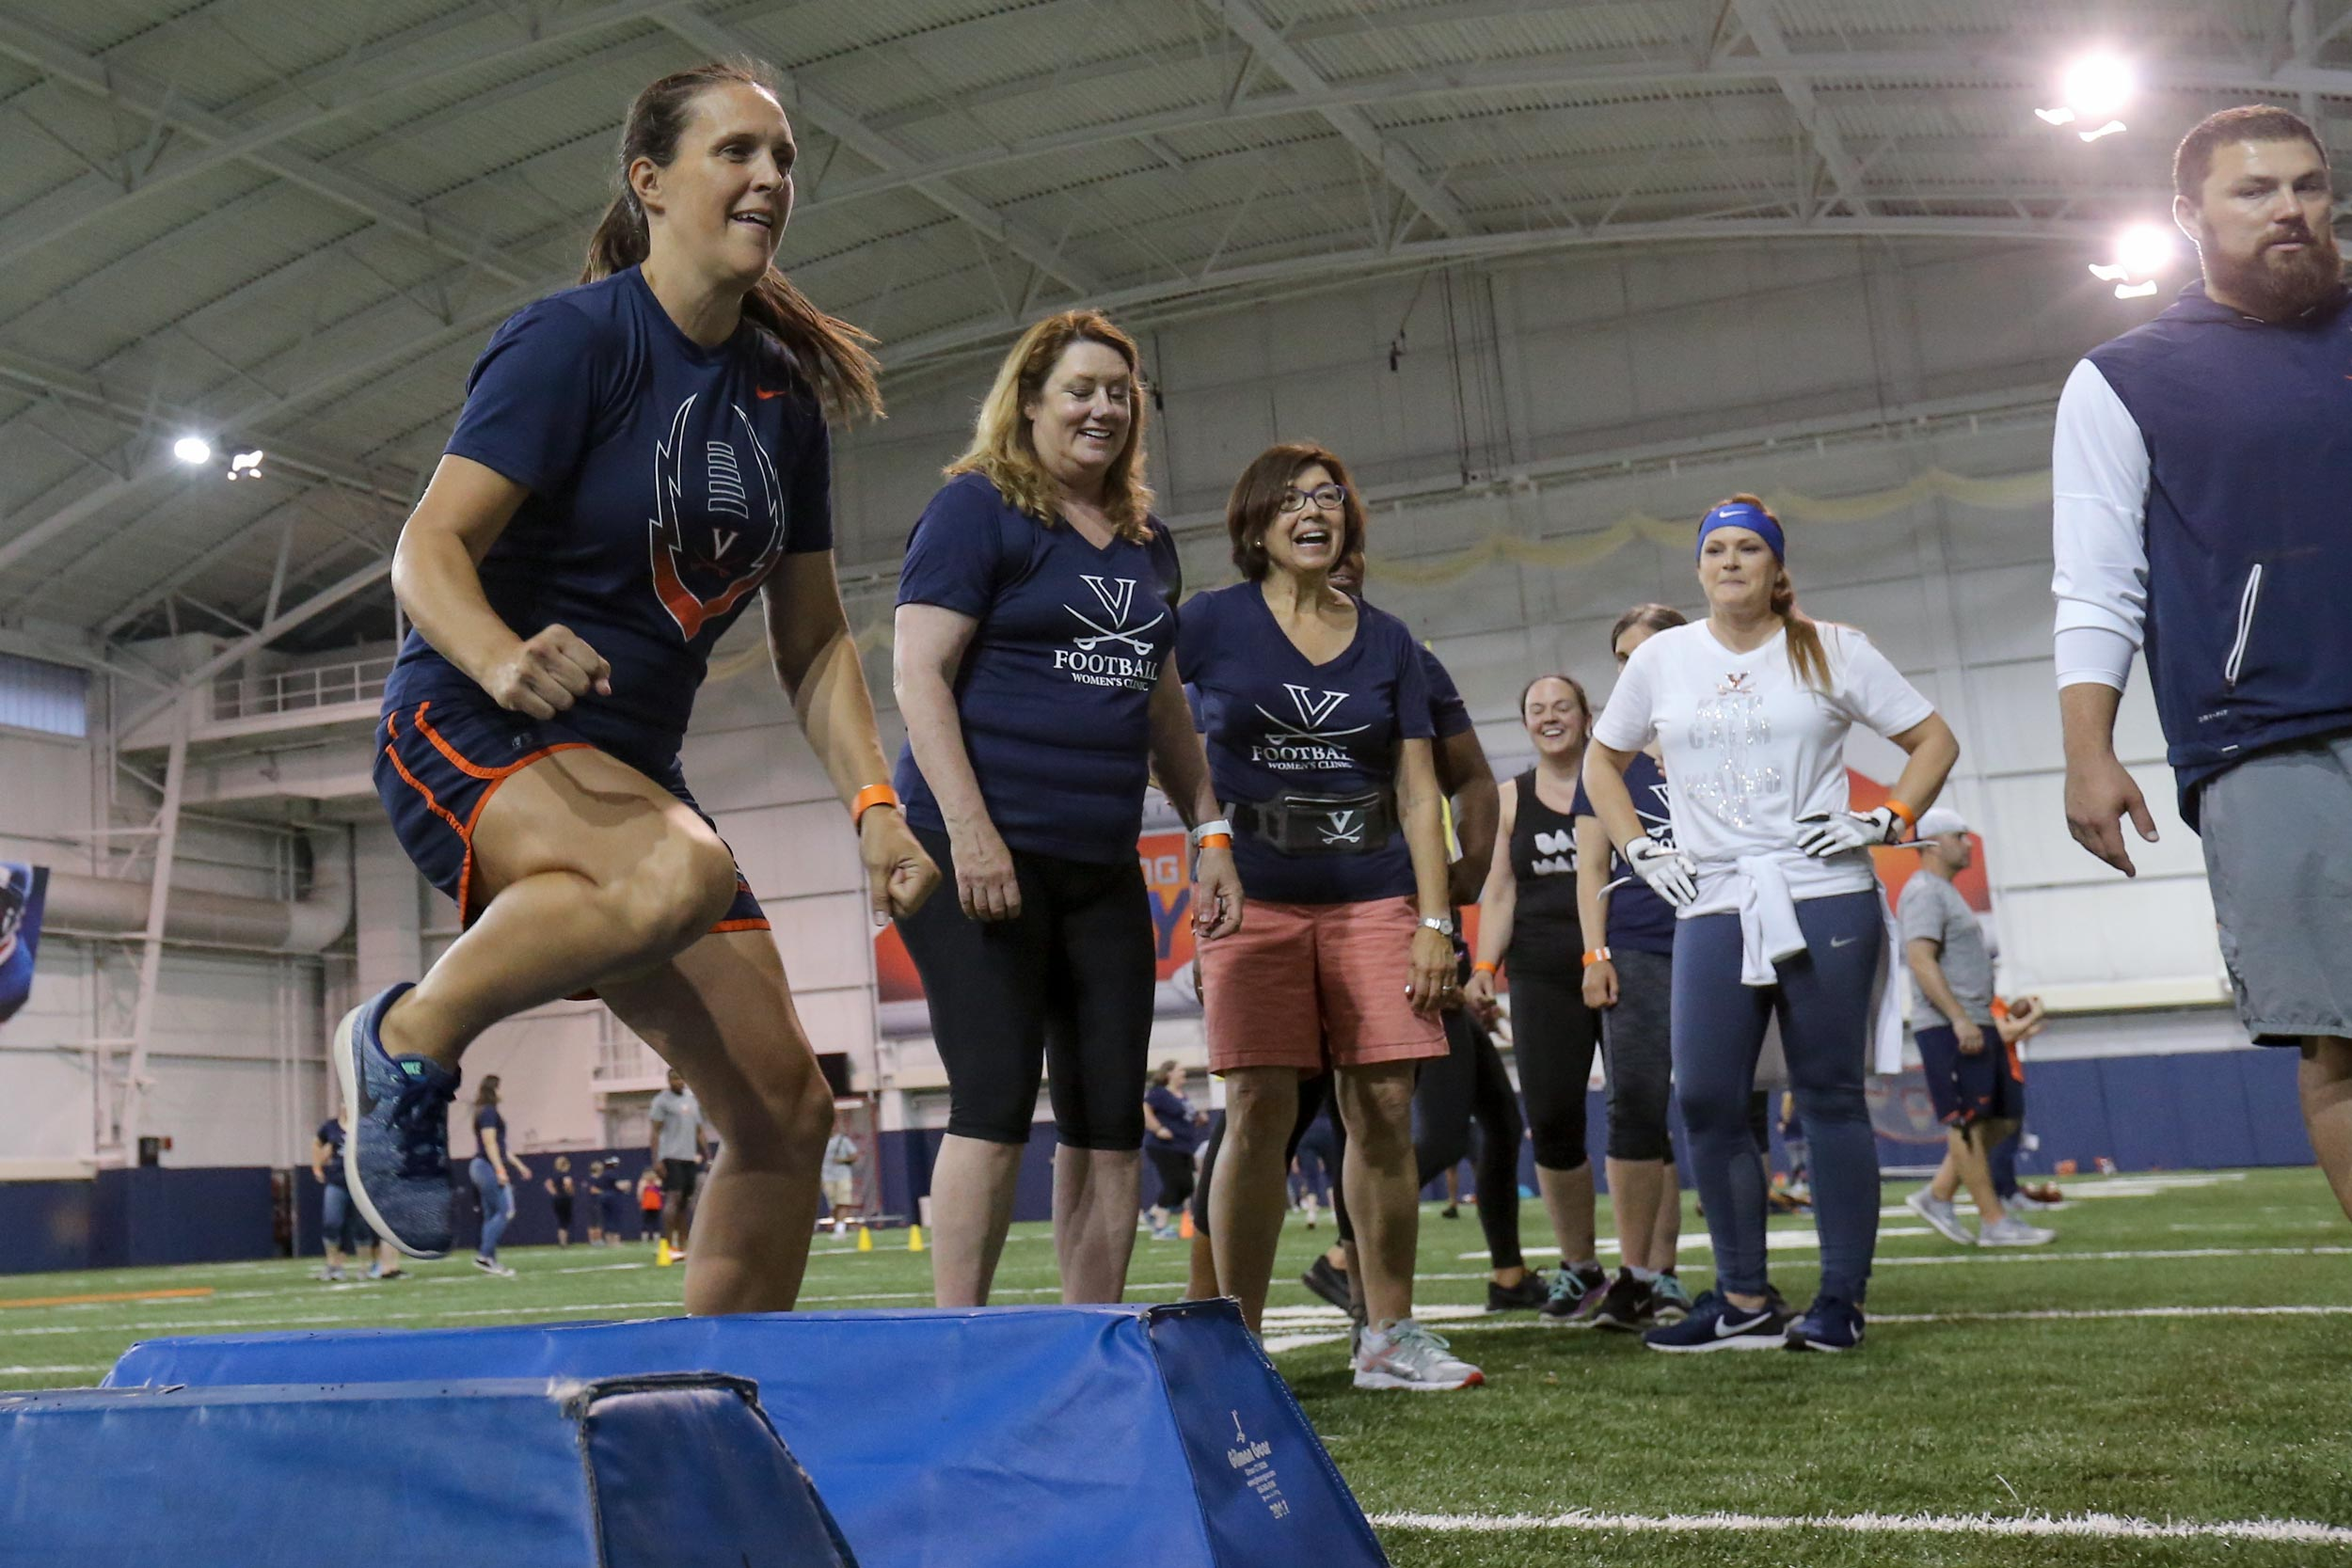 The football coaching staff promised that the clinic would be participatory, and they put the players through many of the same drills that the Cavaliers endure during practices.